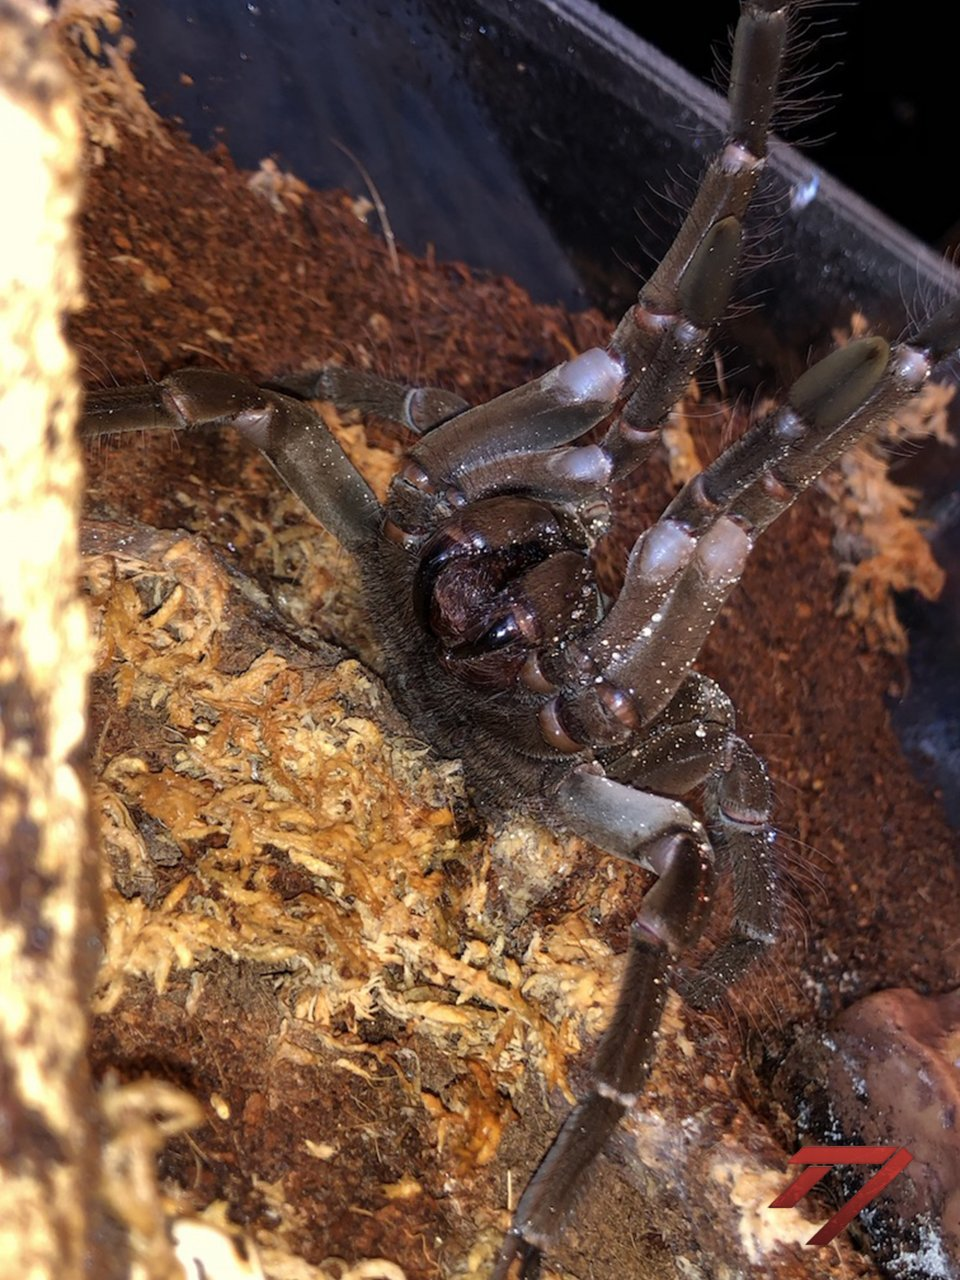 T. stirmi male threat posture